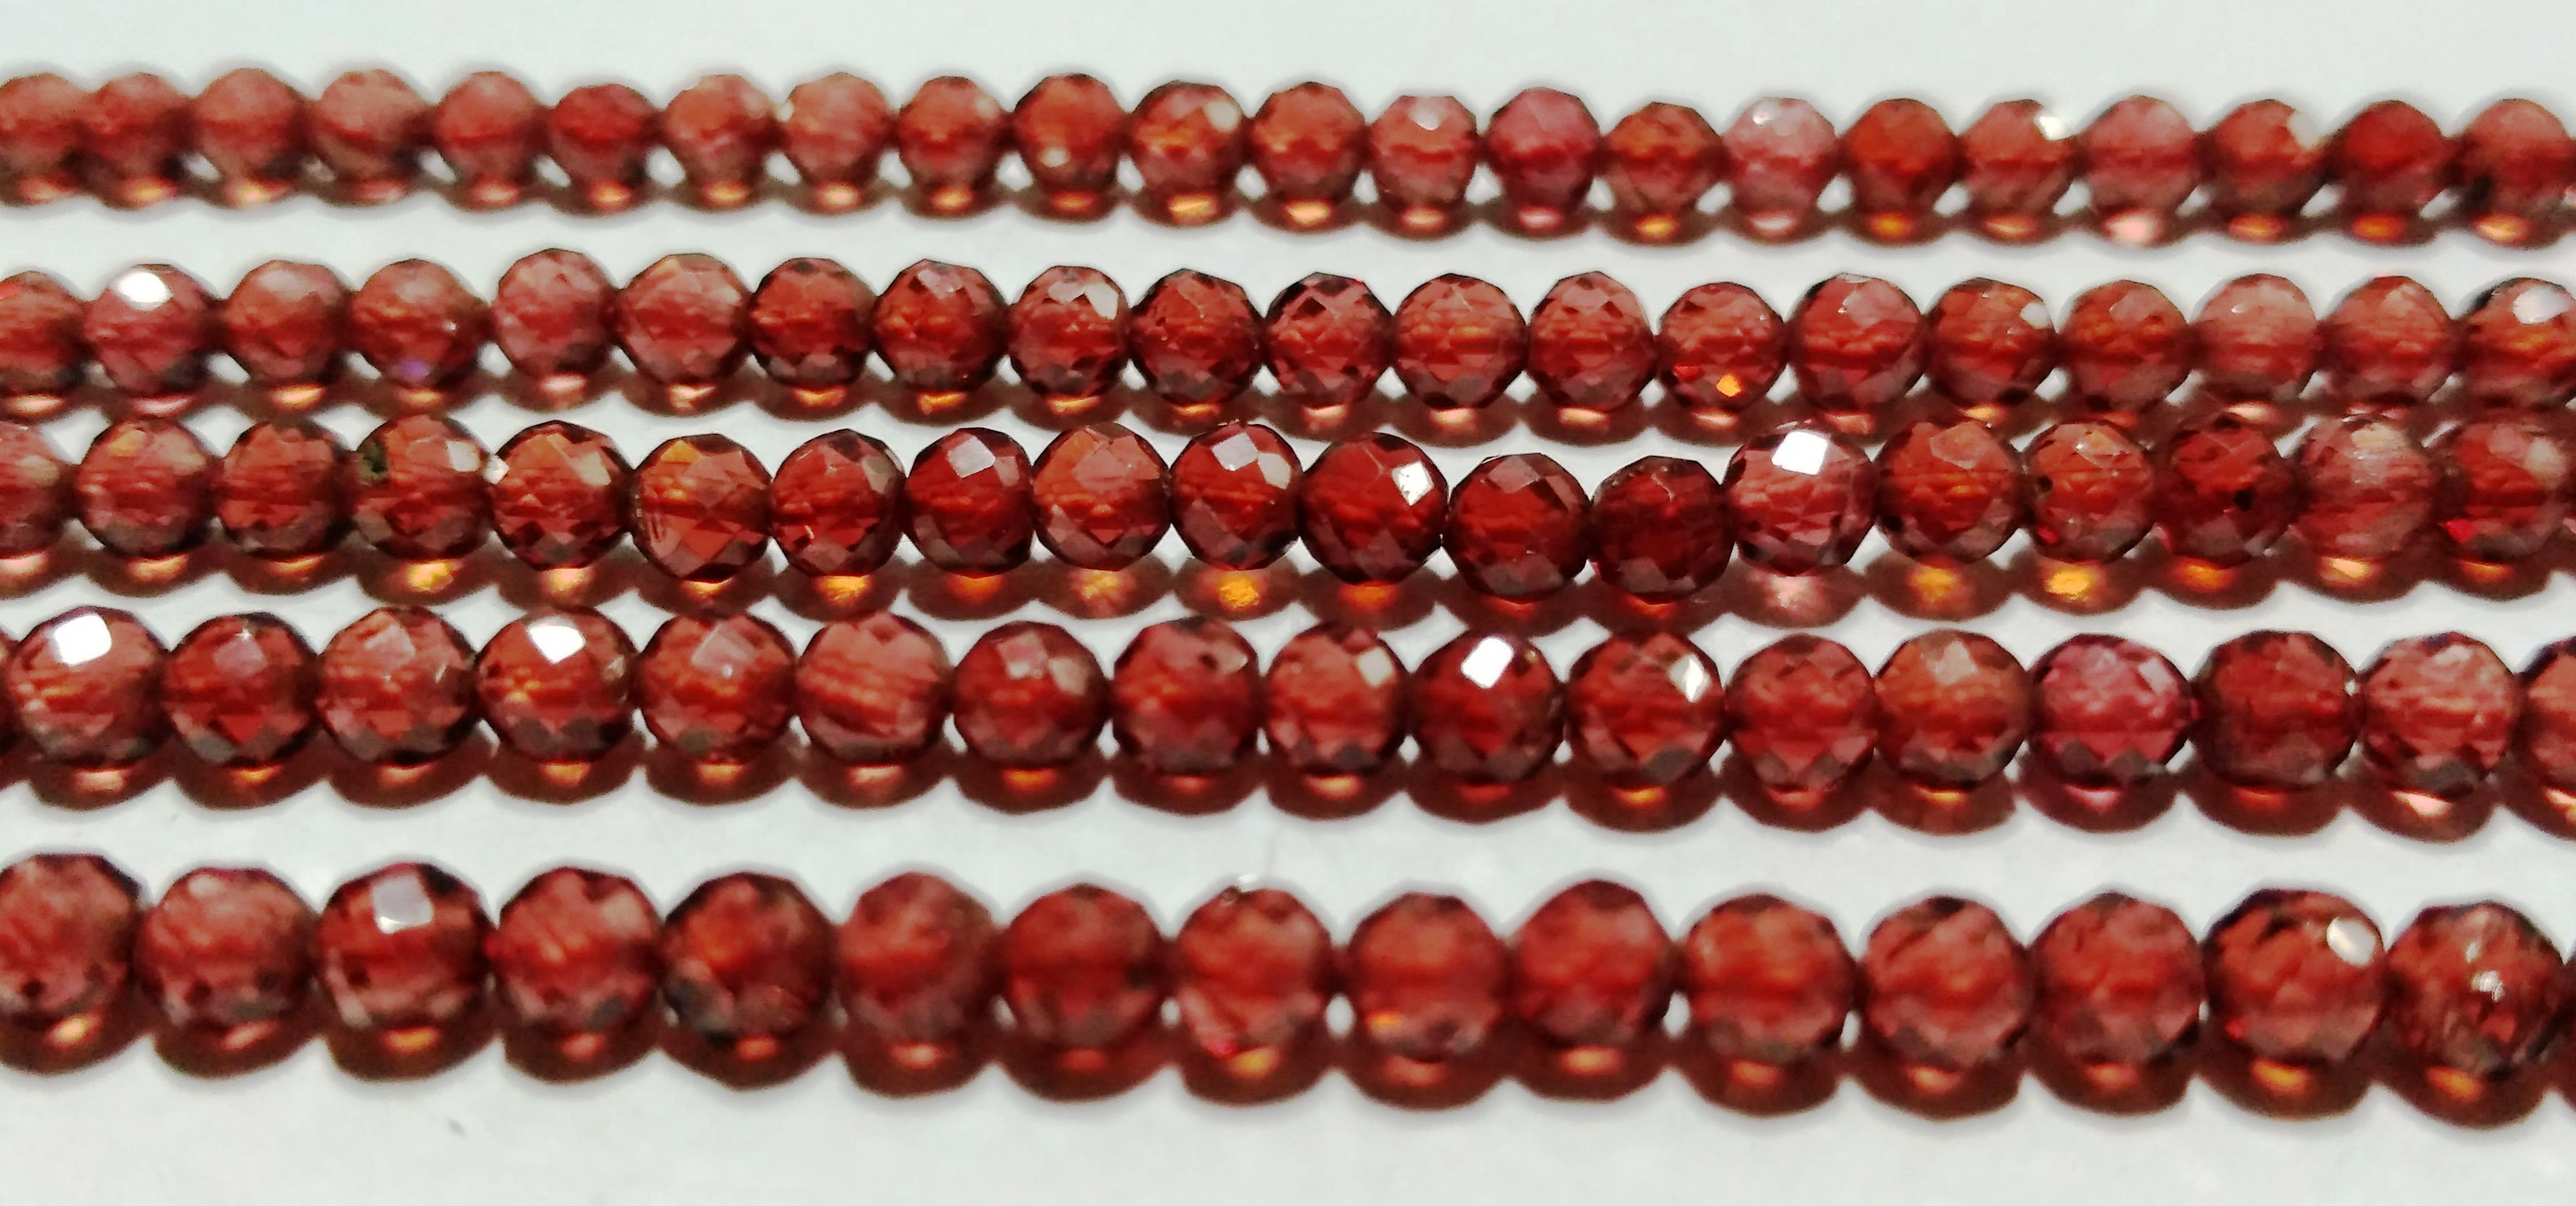 heeral all collections gemstone chips of no beads supplier mogra kinds bracelets wholesale exports